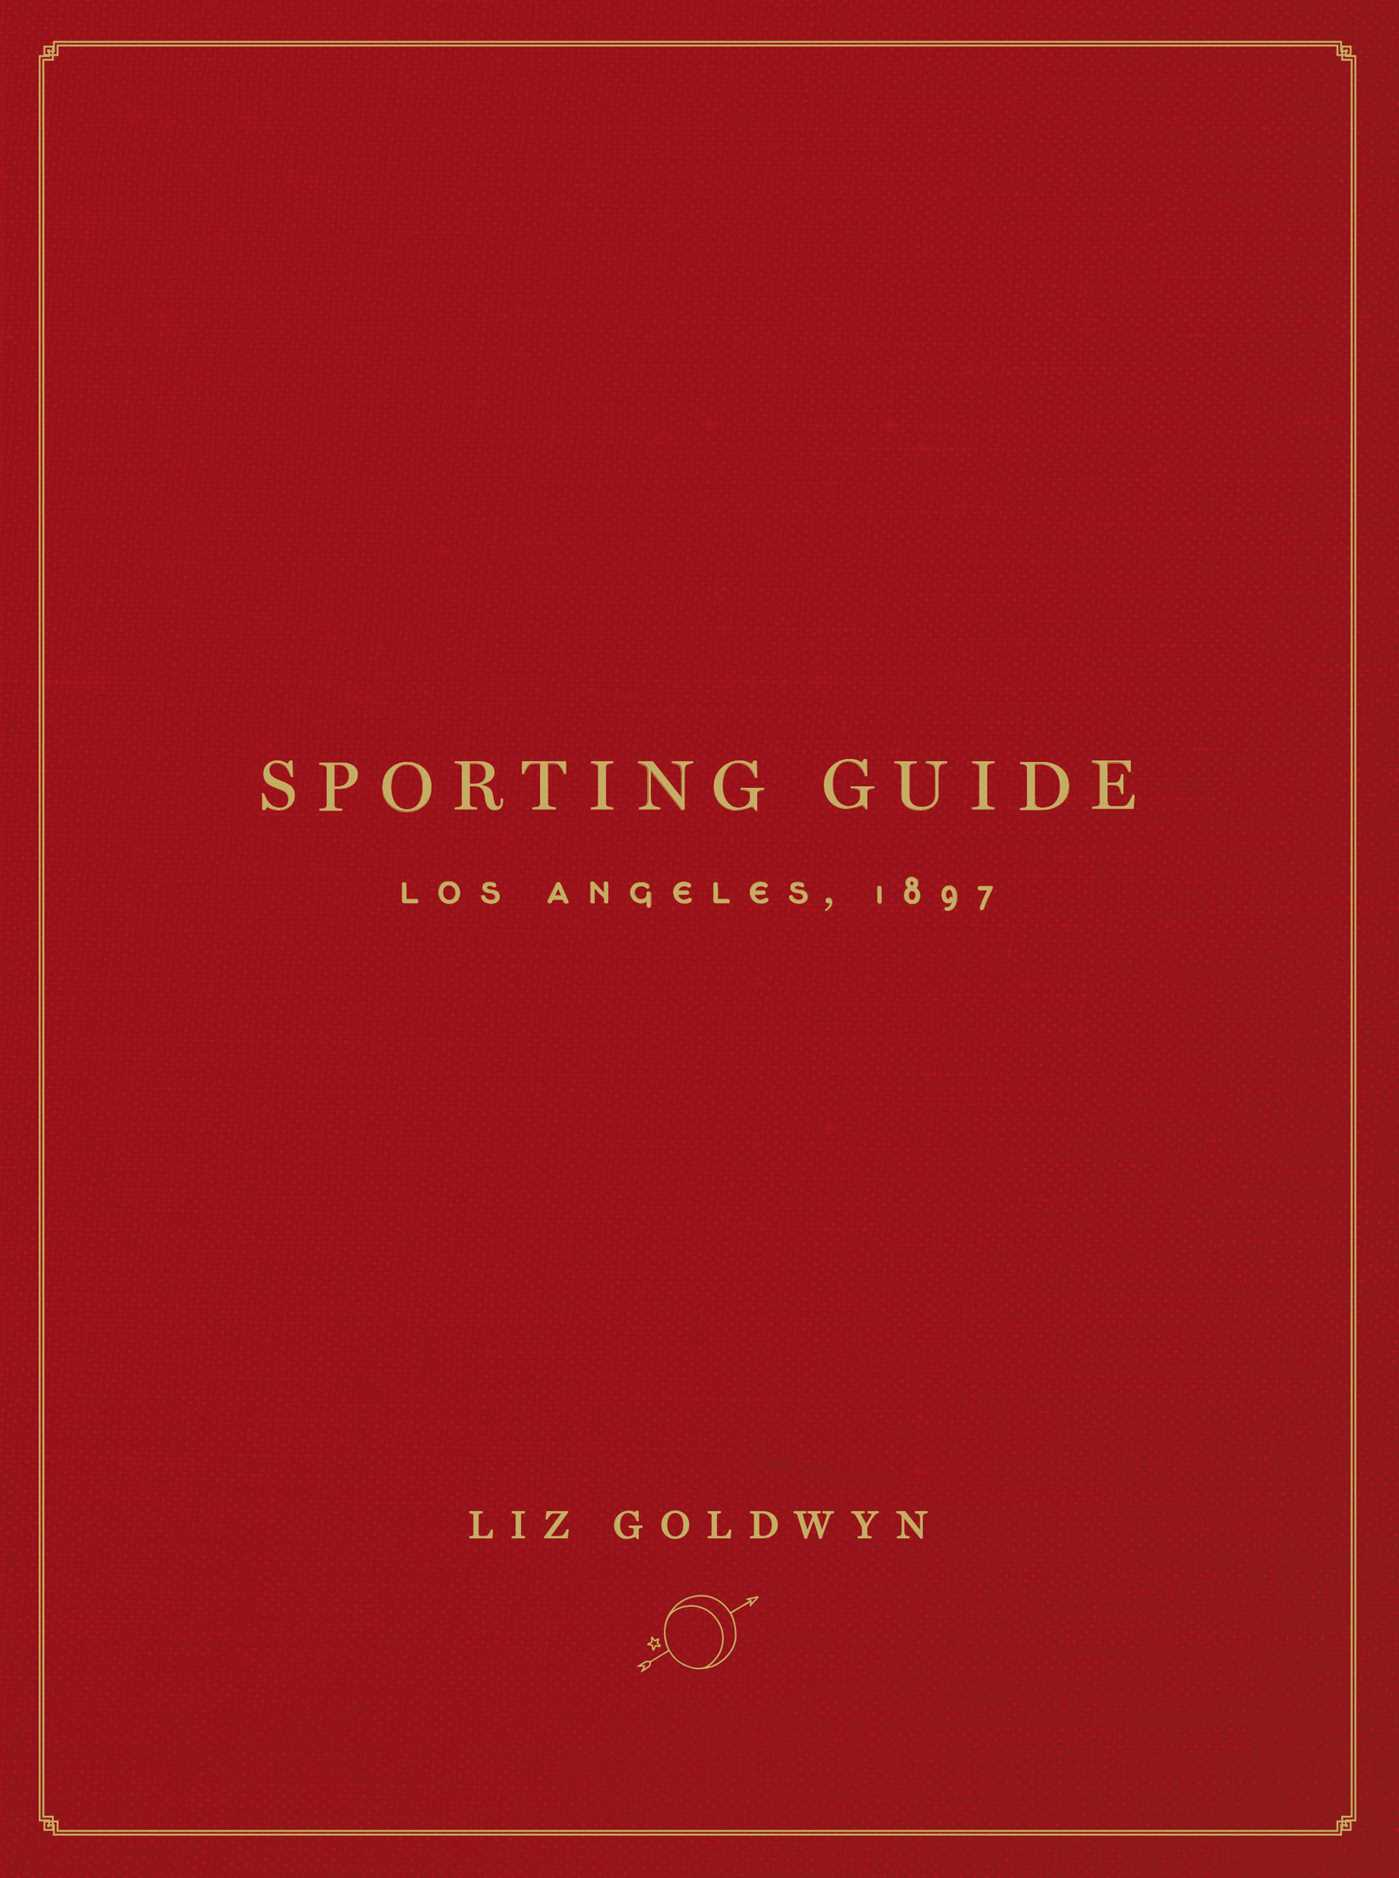 Sporting guide 9781942872191 hr